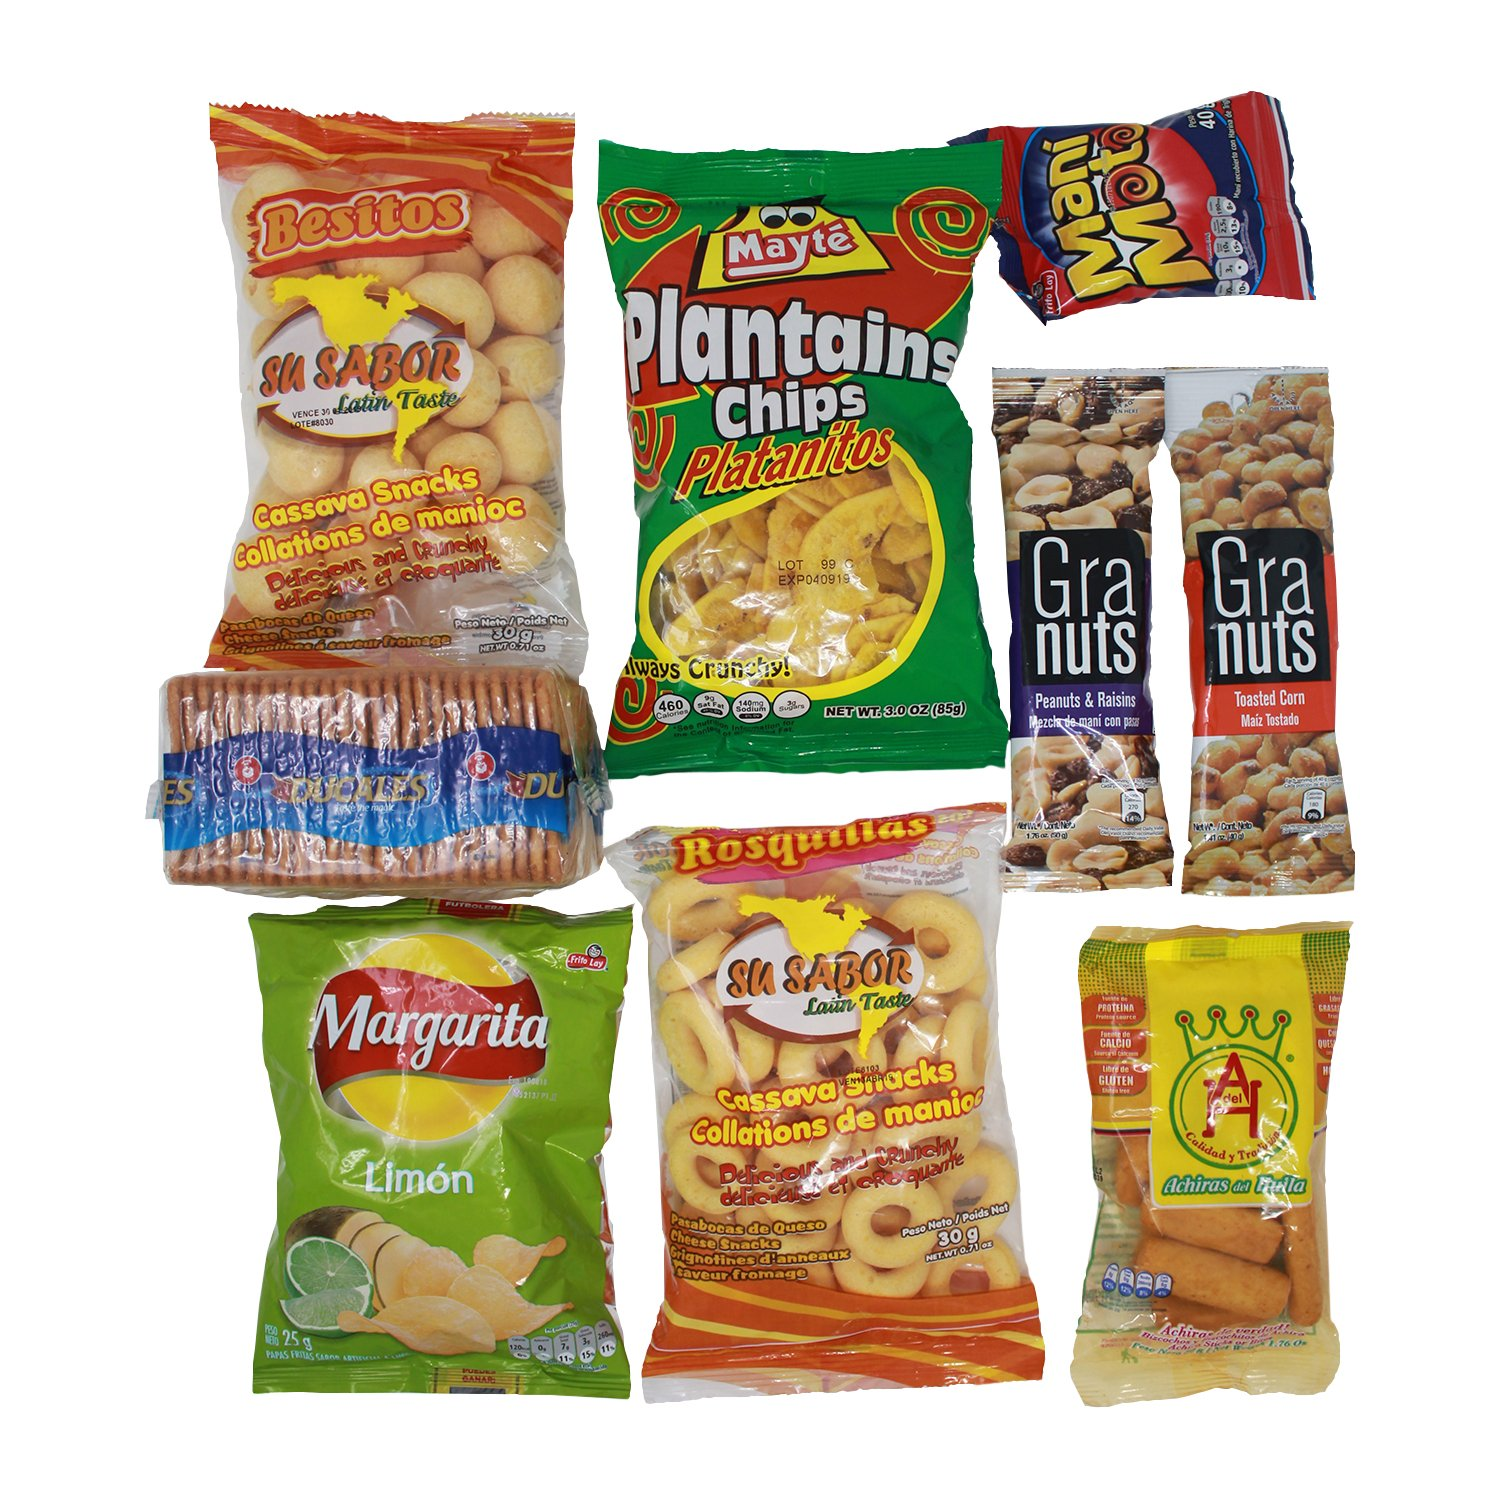 Colombian Snacks Sampler Box | Mecato Colombiano | Cookies, Chips & Candies Variety Pack | Snack Assortment Delight | 40 count / 25 different items | ...